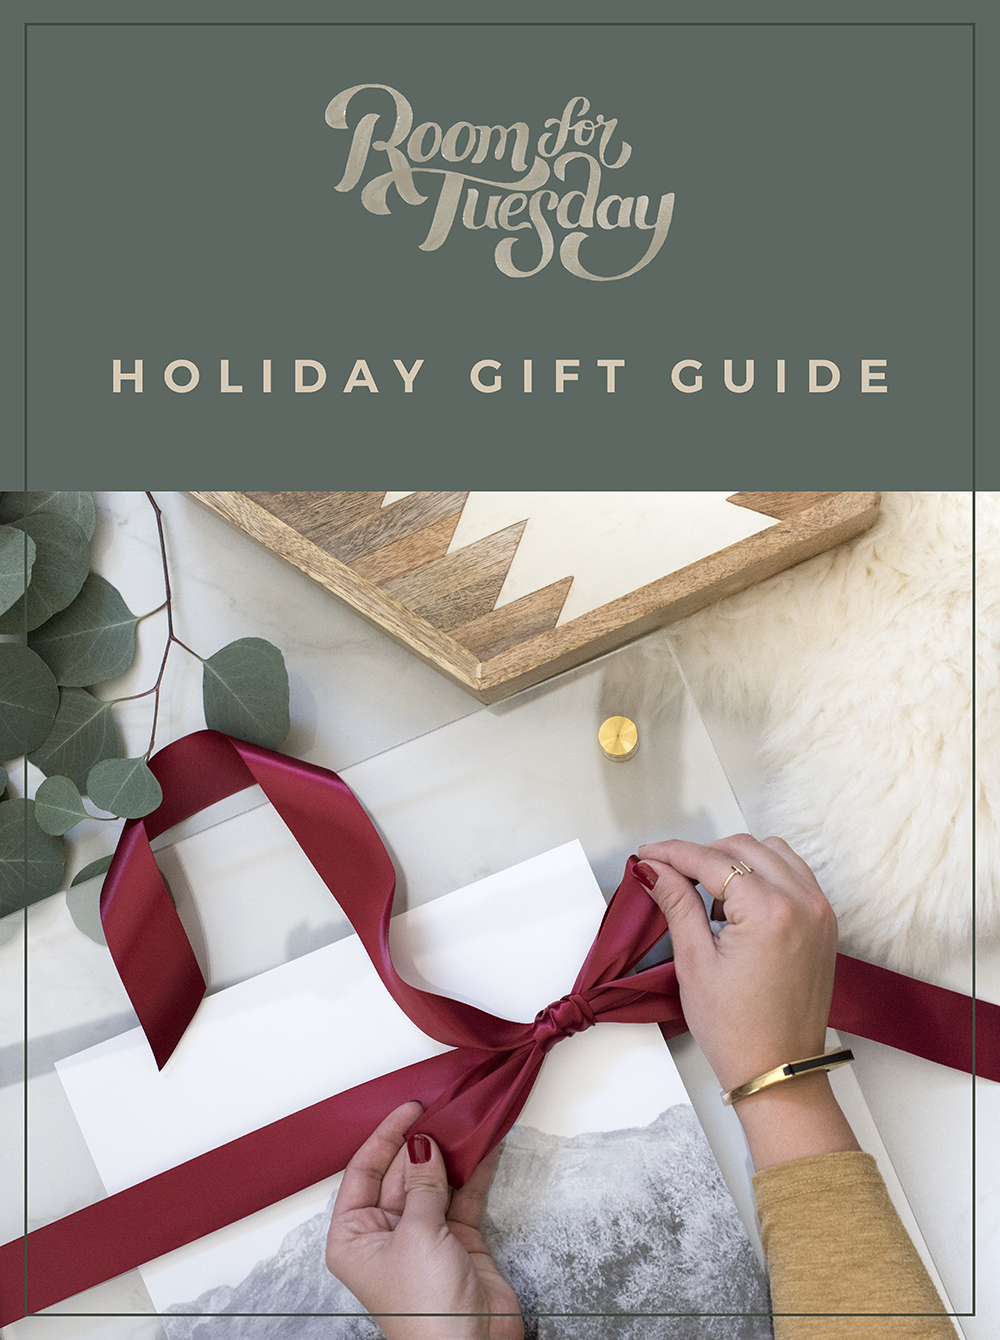 2017 Holiday Gift Guide - Room for Tuesday